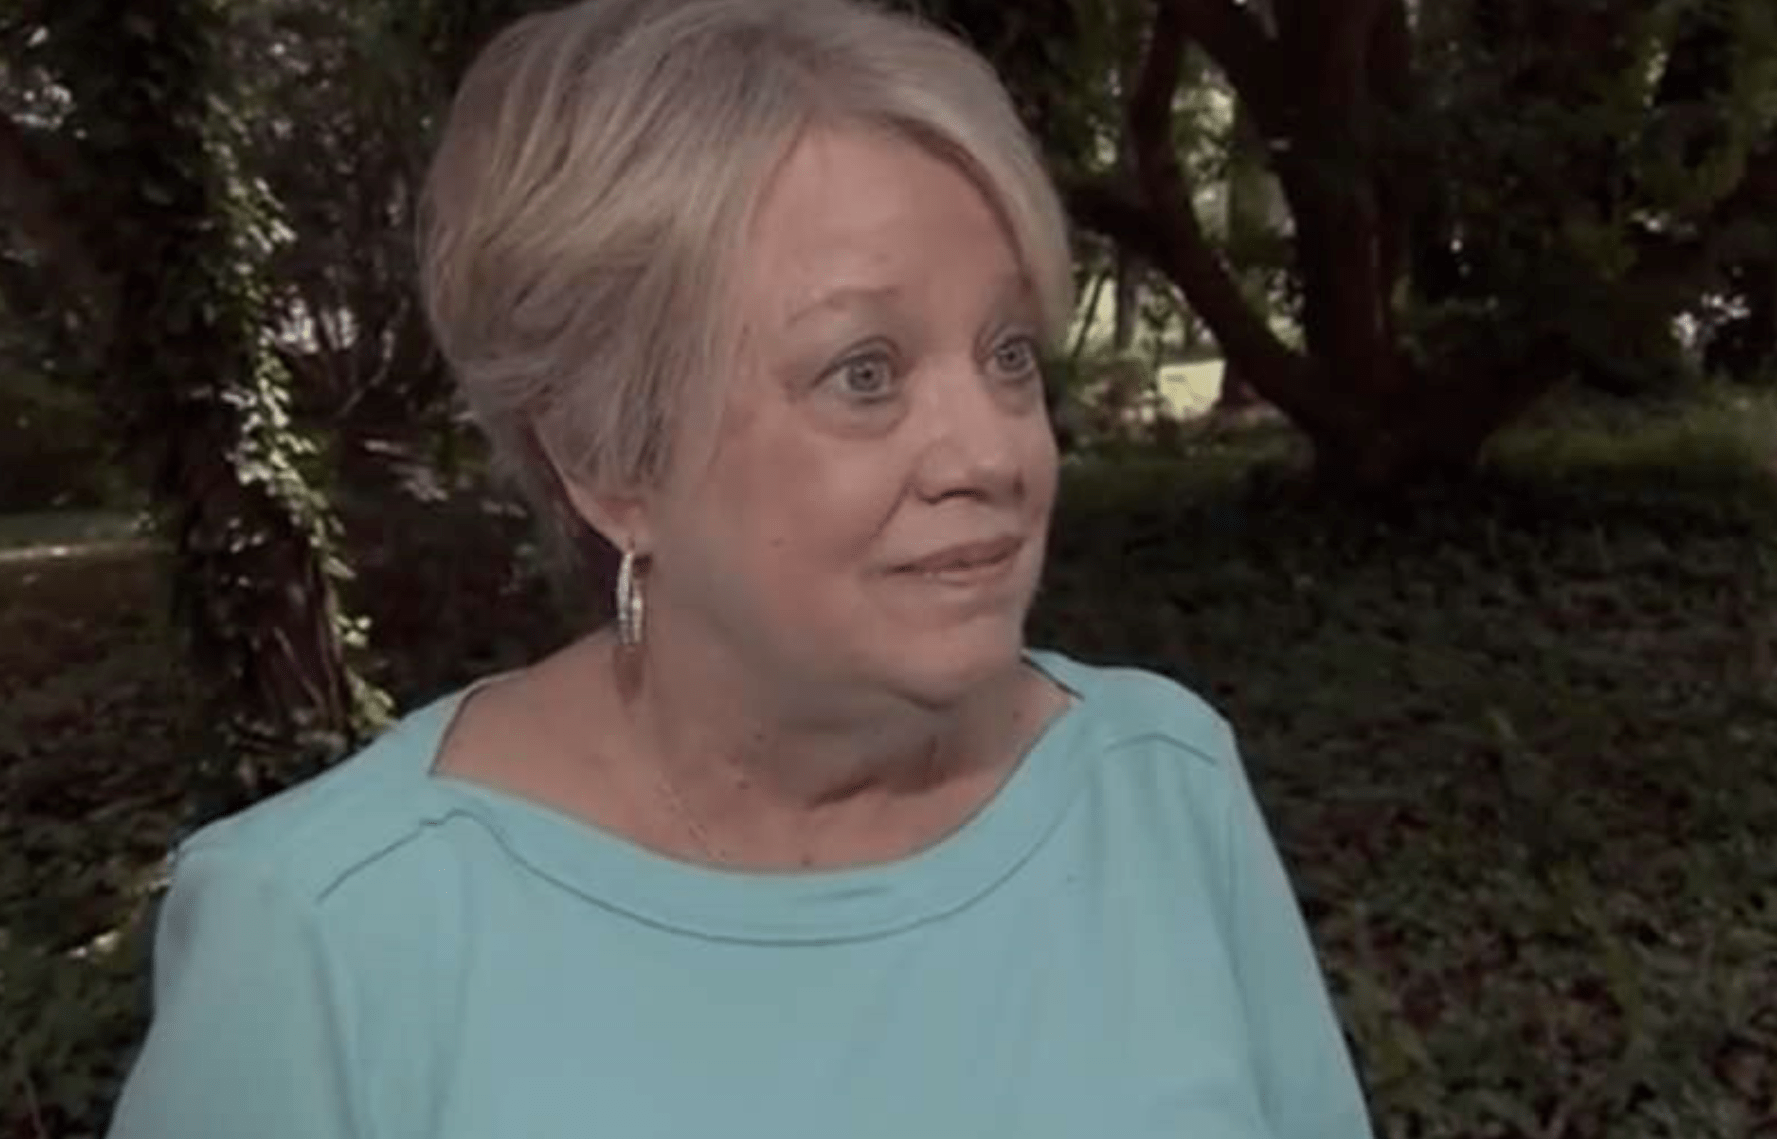 White Woman Calls Black Woman N-word Says She's Not Sorry 'I would say it again'